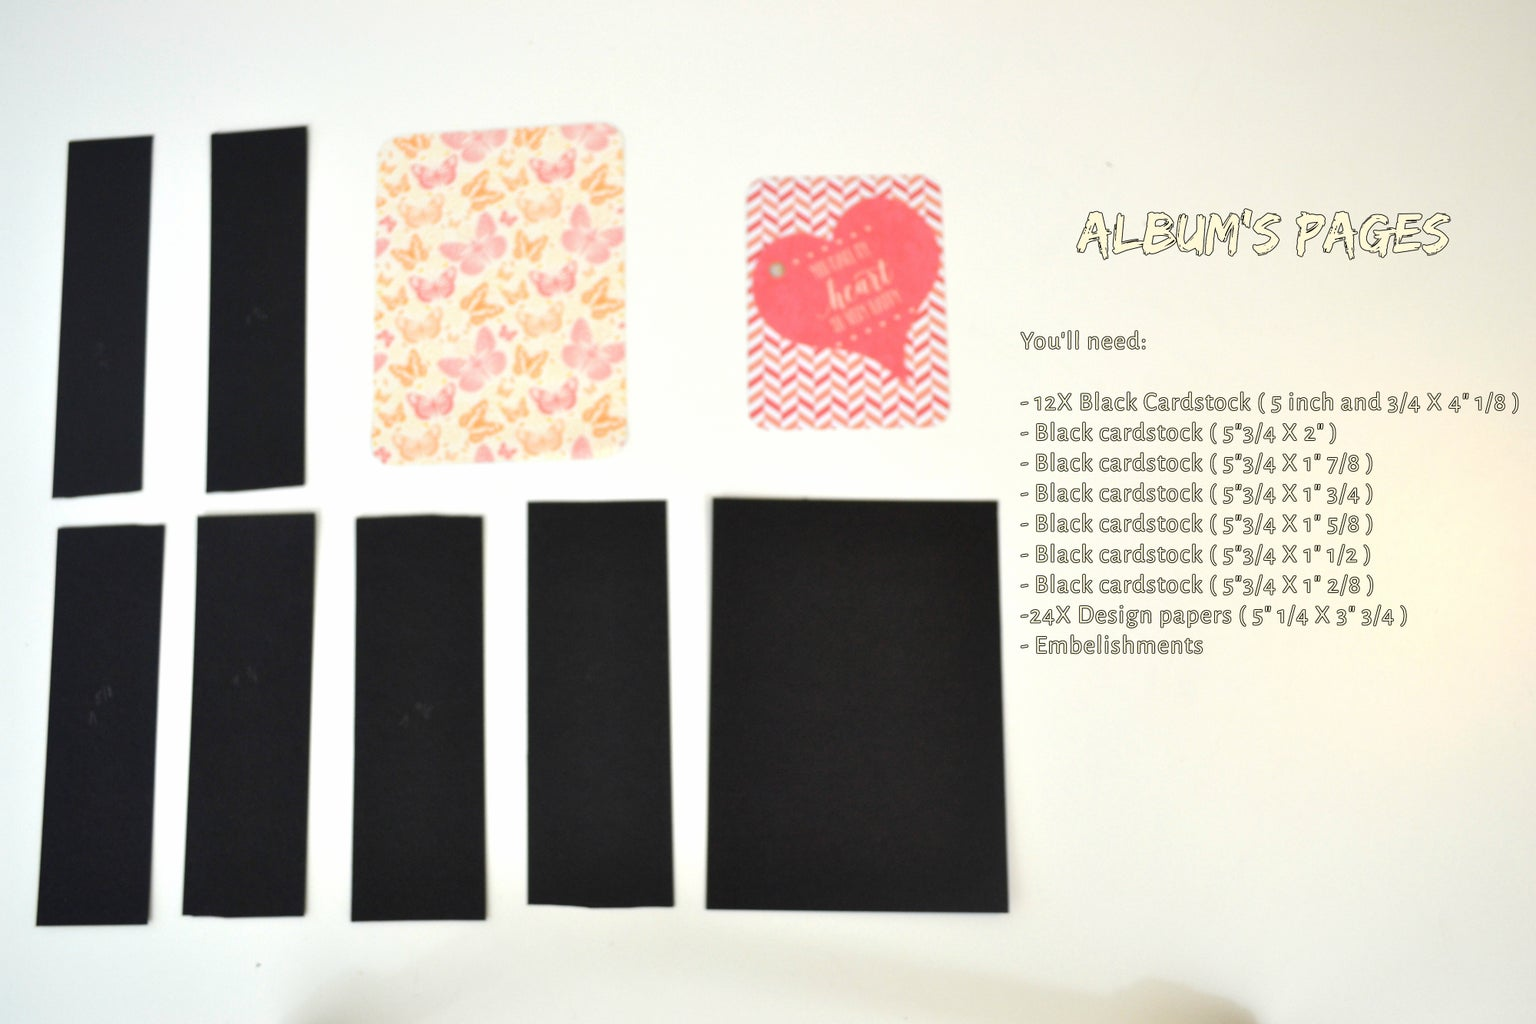 Making the Album Pages: Dimensions